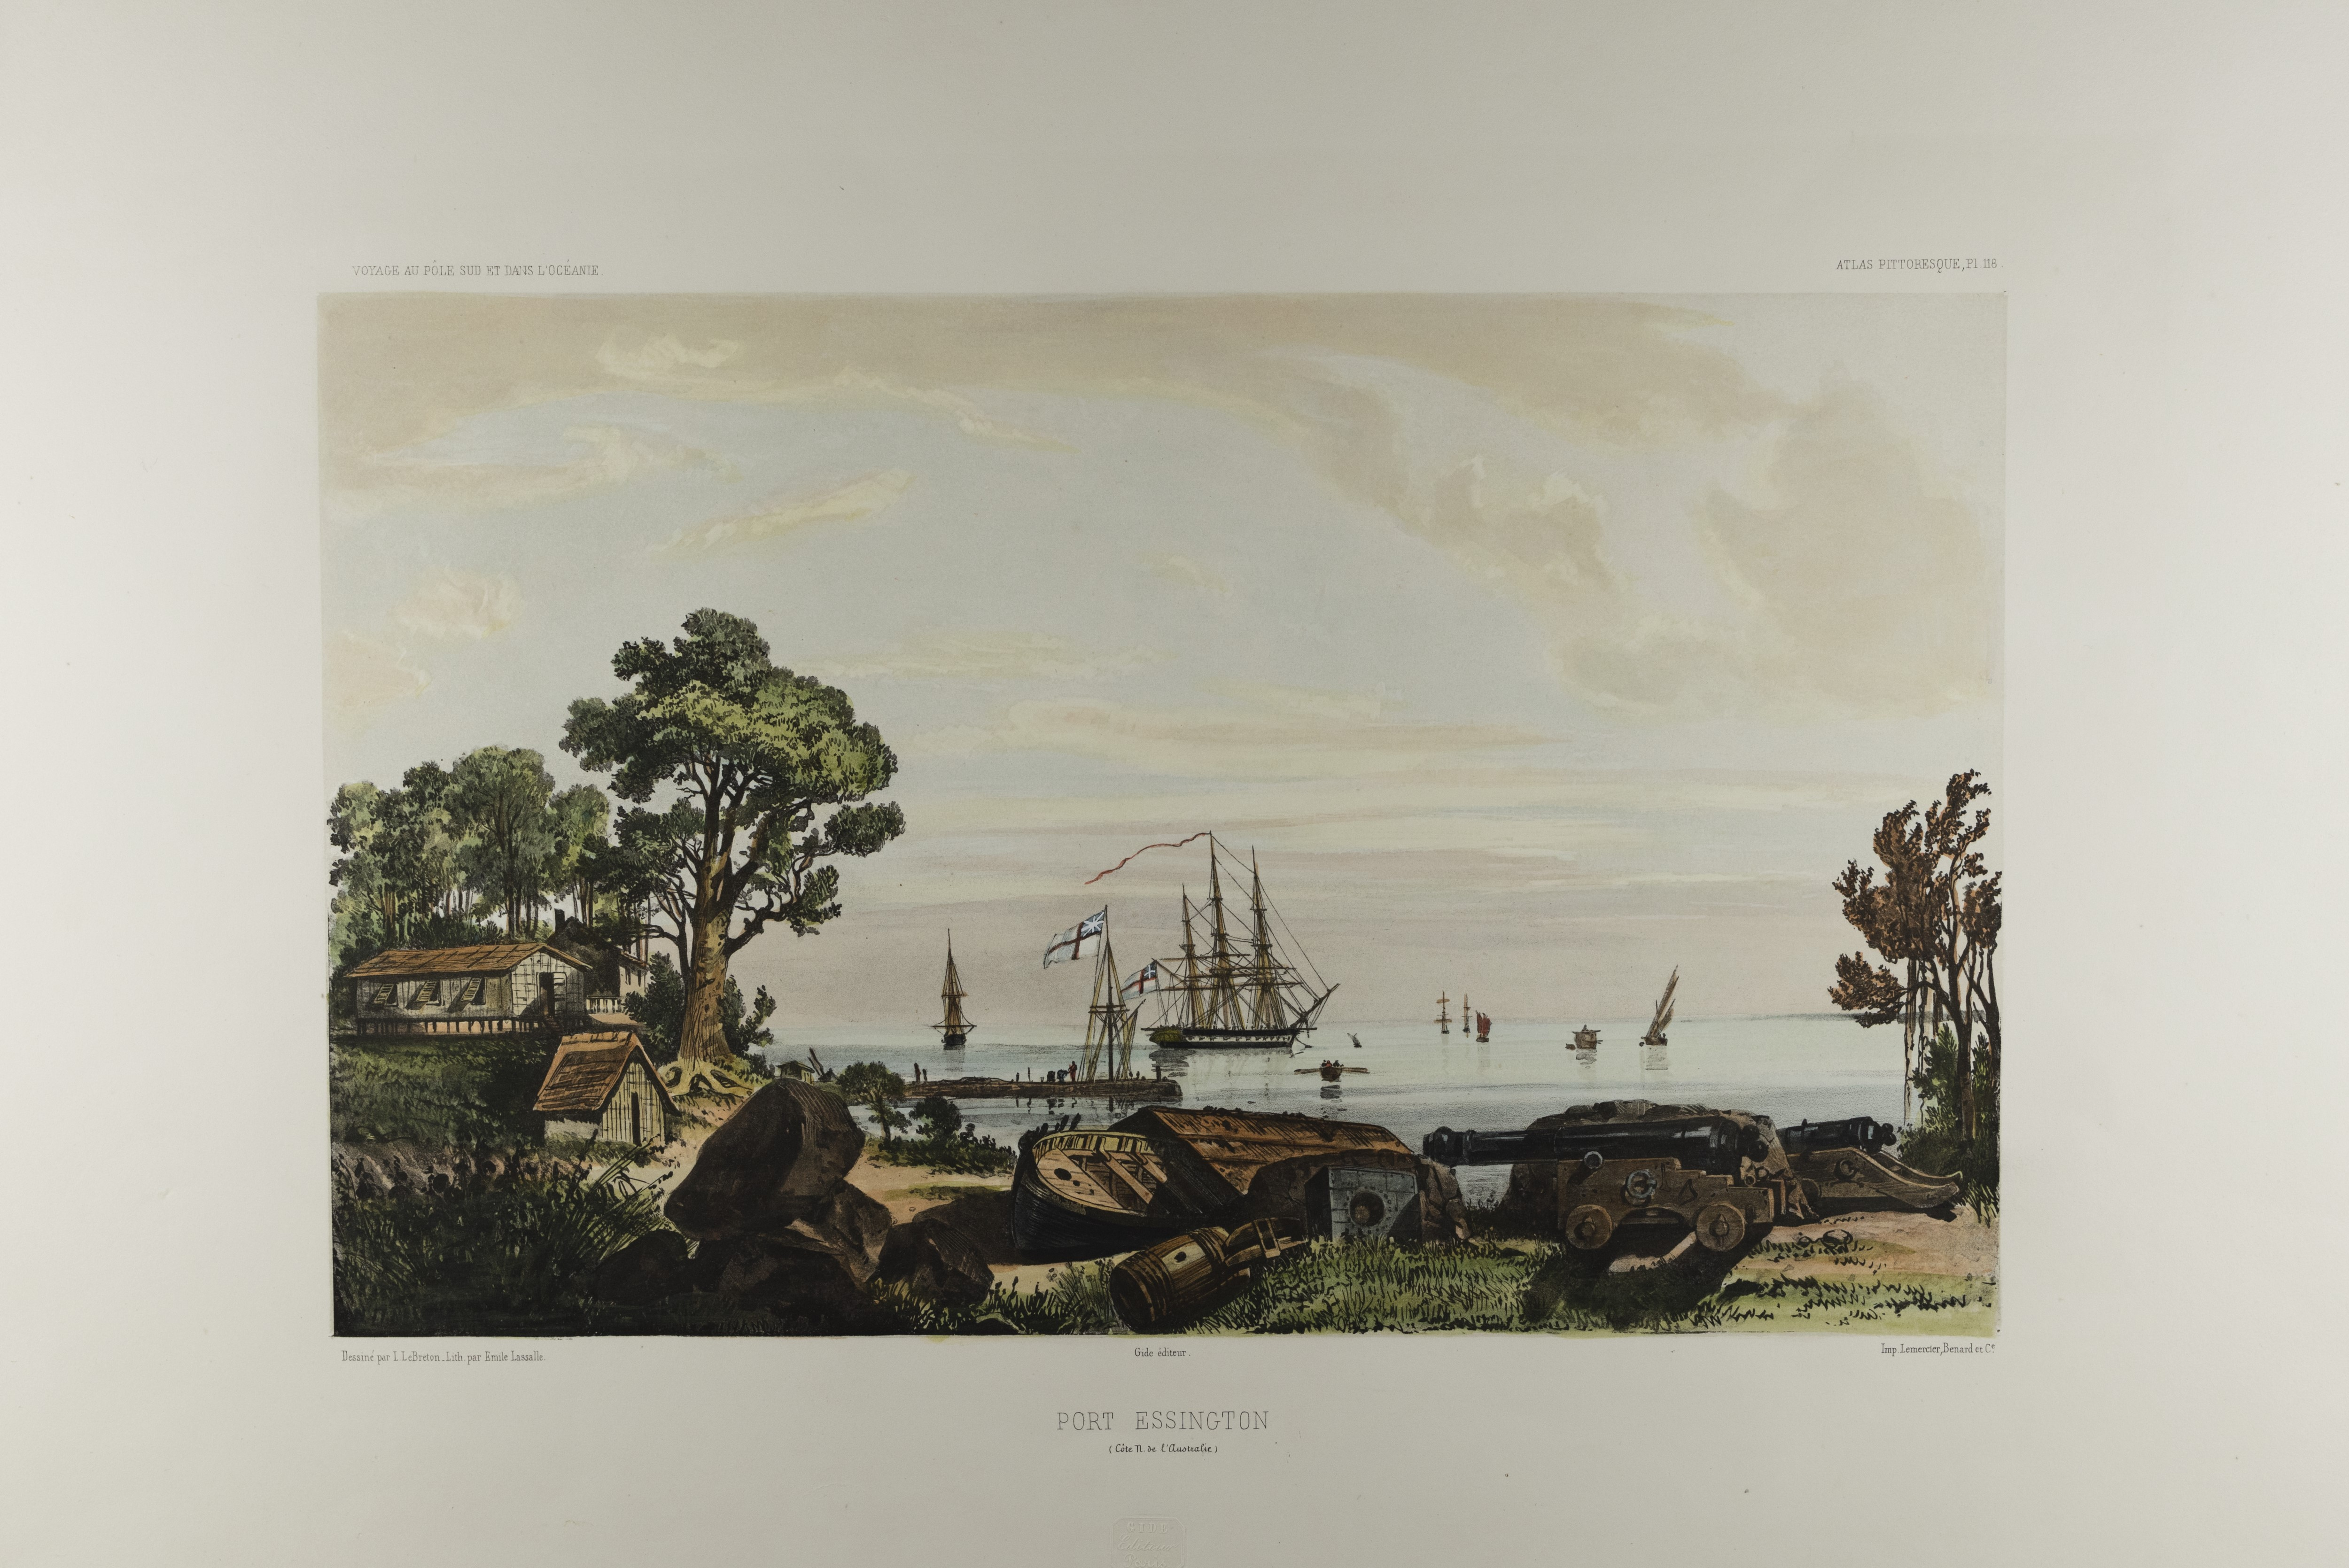 Hand-coloured print depicts a view over the water, with several sailing vessels in the background and in the foreground on shore cannons, barrels, a barge and buildings at left.